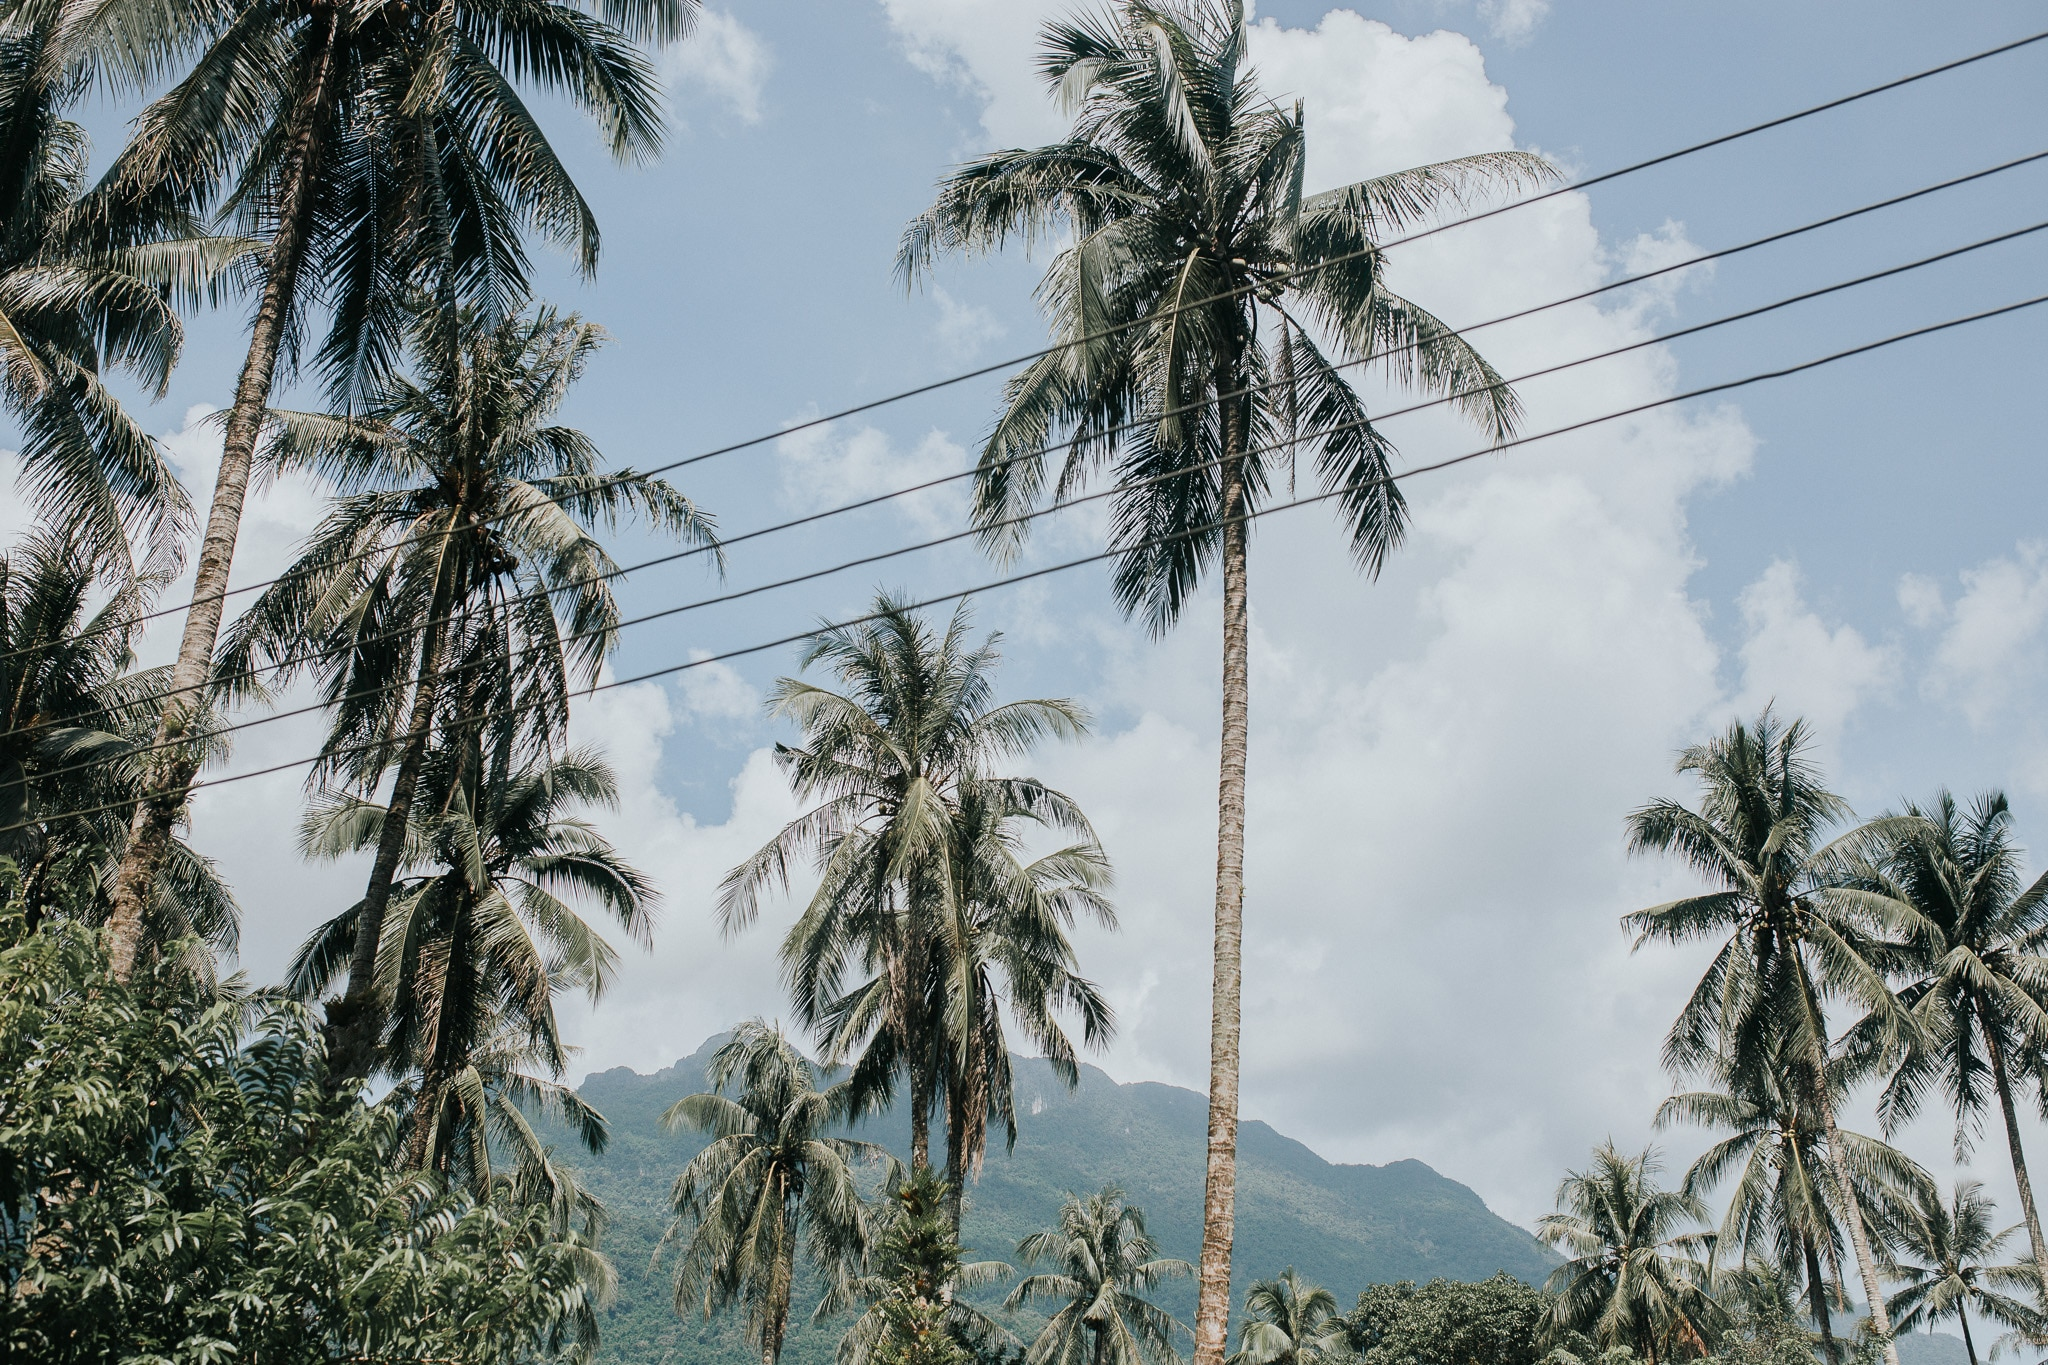 On week in Laos - Vang Vieng - Palm trees